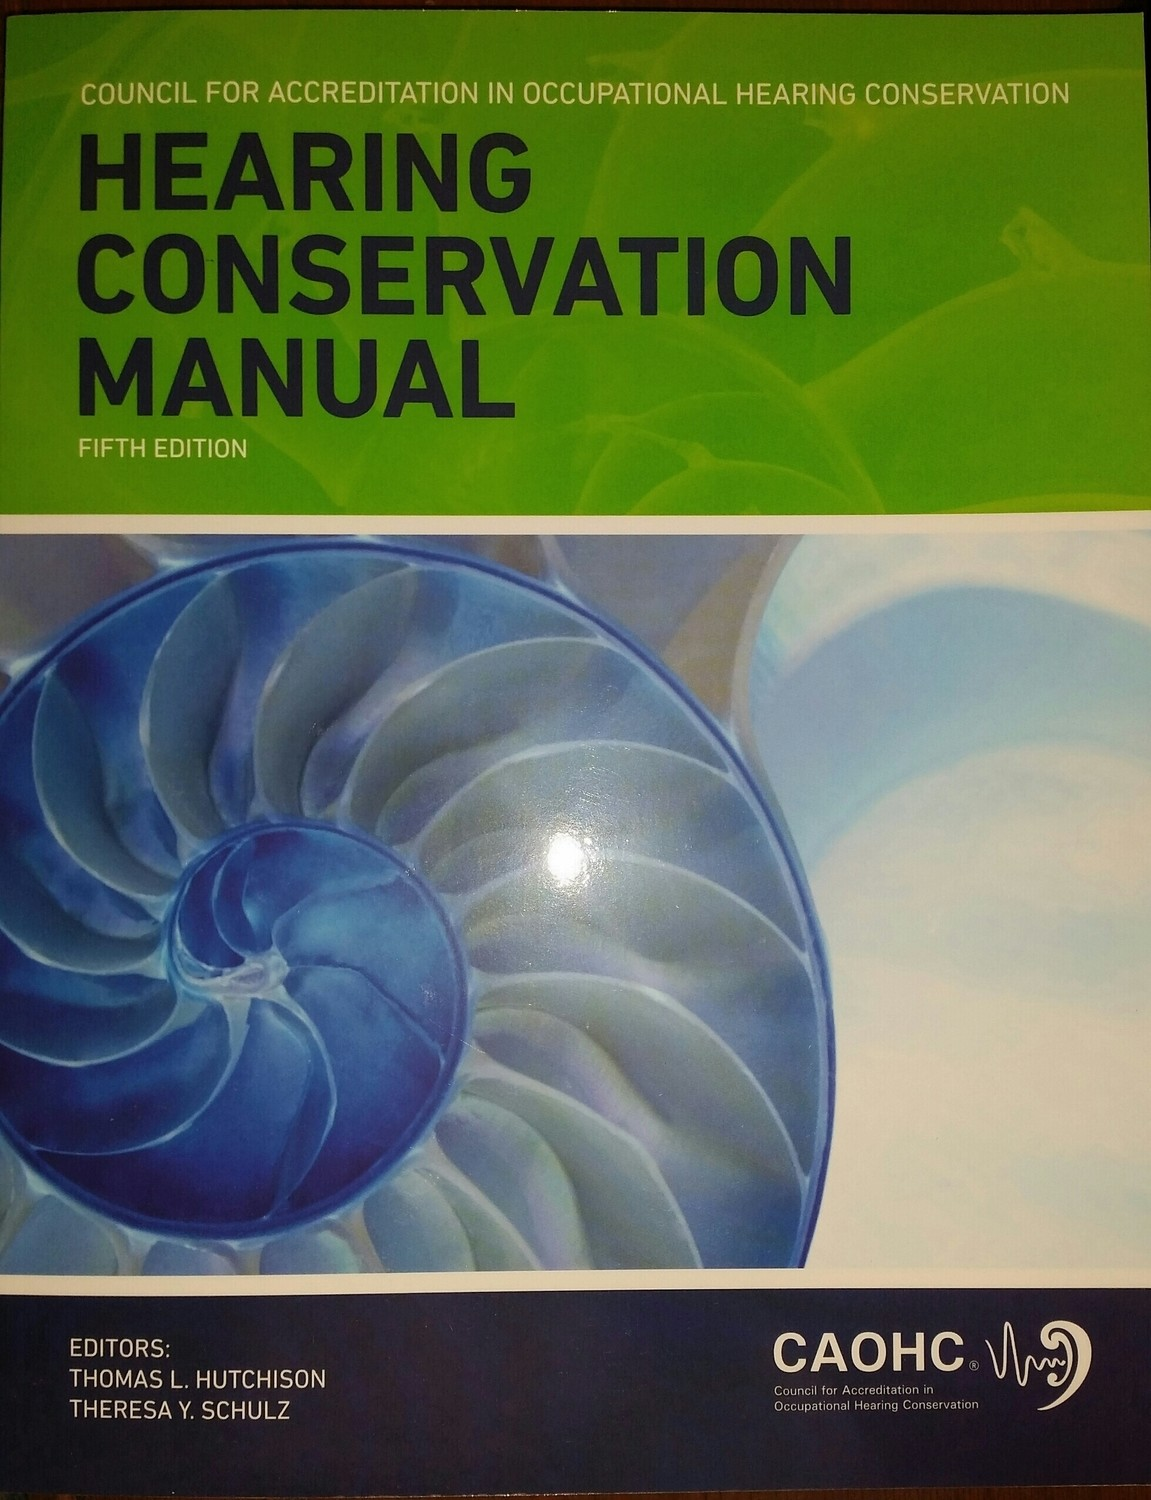 CAOHC Hearing Conservation Manual, 5th Edition